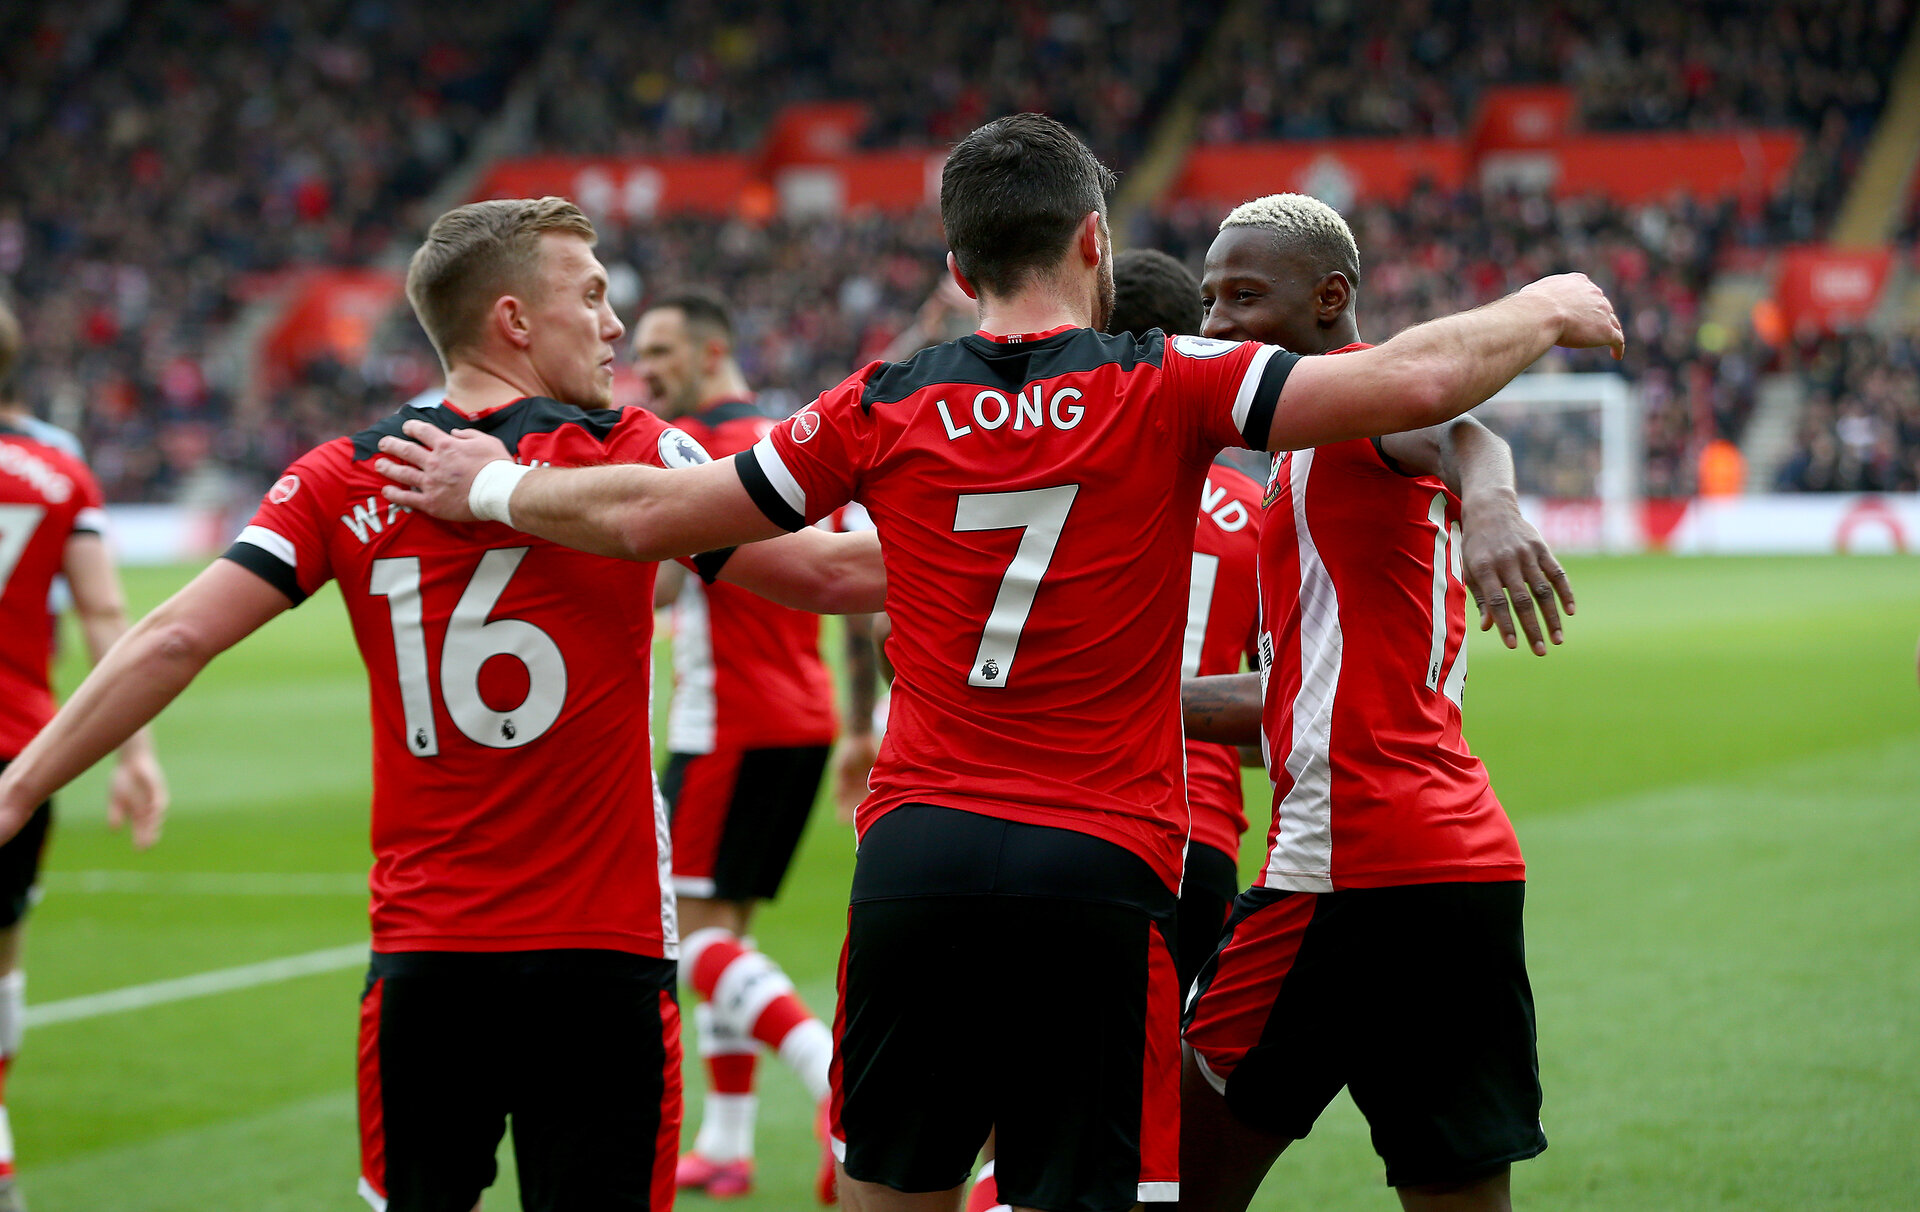 SOUTHAMPTON, ENGLAND - FEBRUARY 22: Shane Long(7) of Southampton celebrates with his team mates after opening the scoring during the Premier League match between Southampton FC and Aston Villa at St Mary's Stadium on February 22, 2020 in Southampton, United Kingdom. (Photo by Matt Watson/Southampton FC via Getty Images)